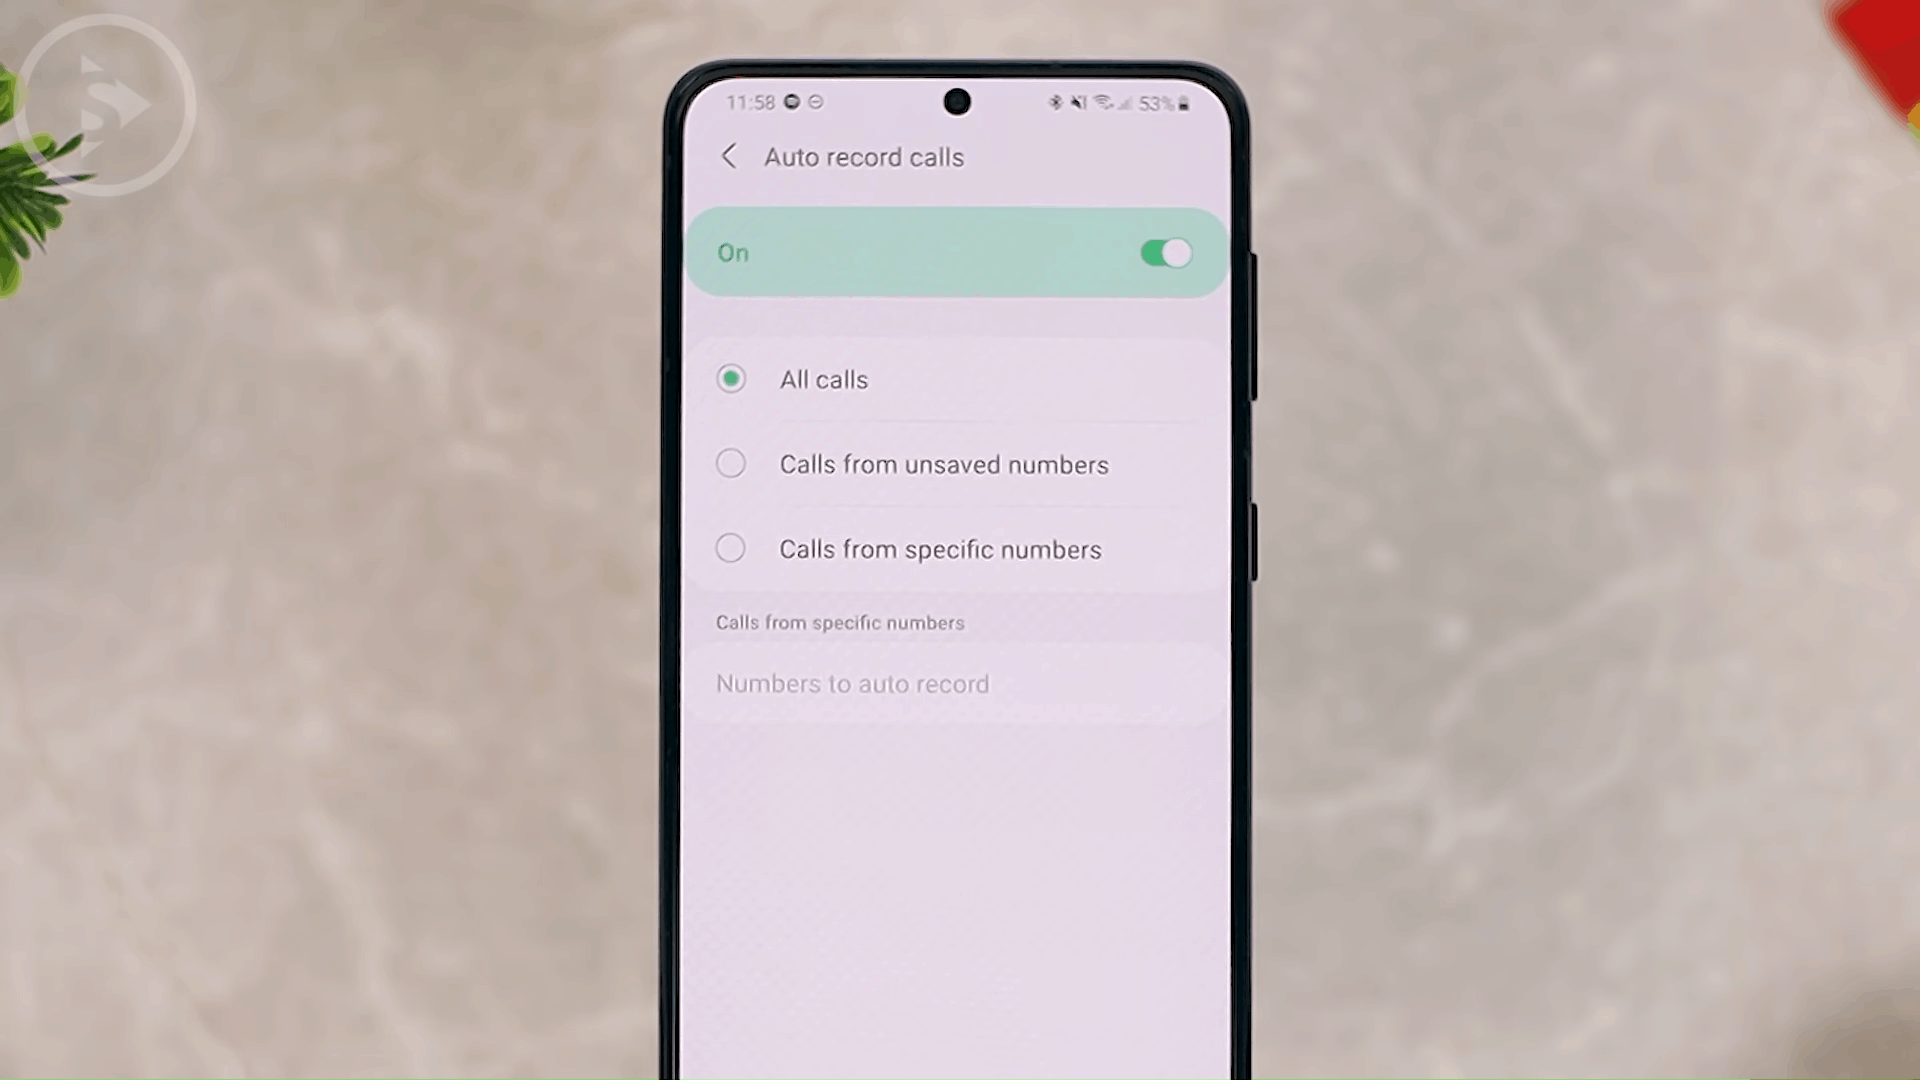 Auto Record Calls - 8 New and Cool Samsung Features in One UI 3.0 and One UI 3.1